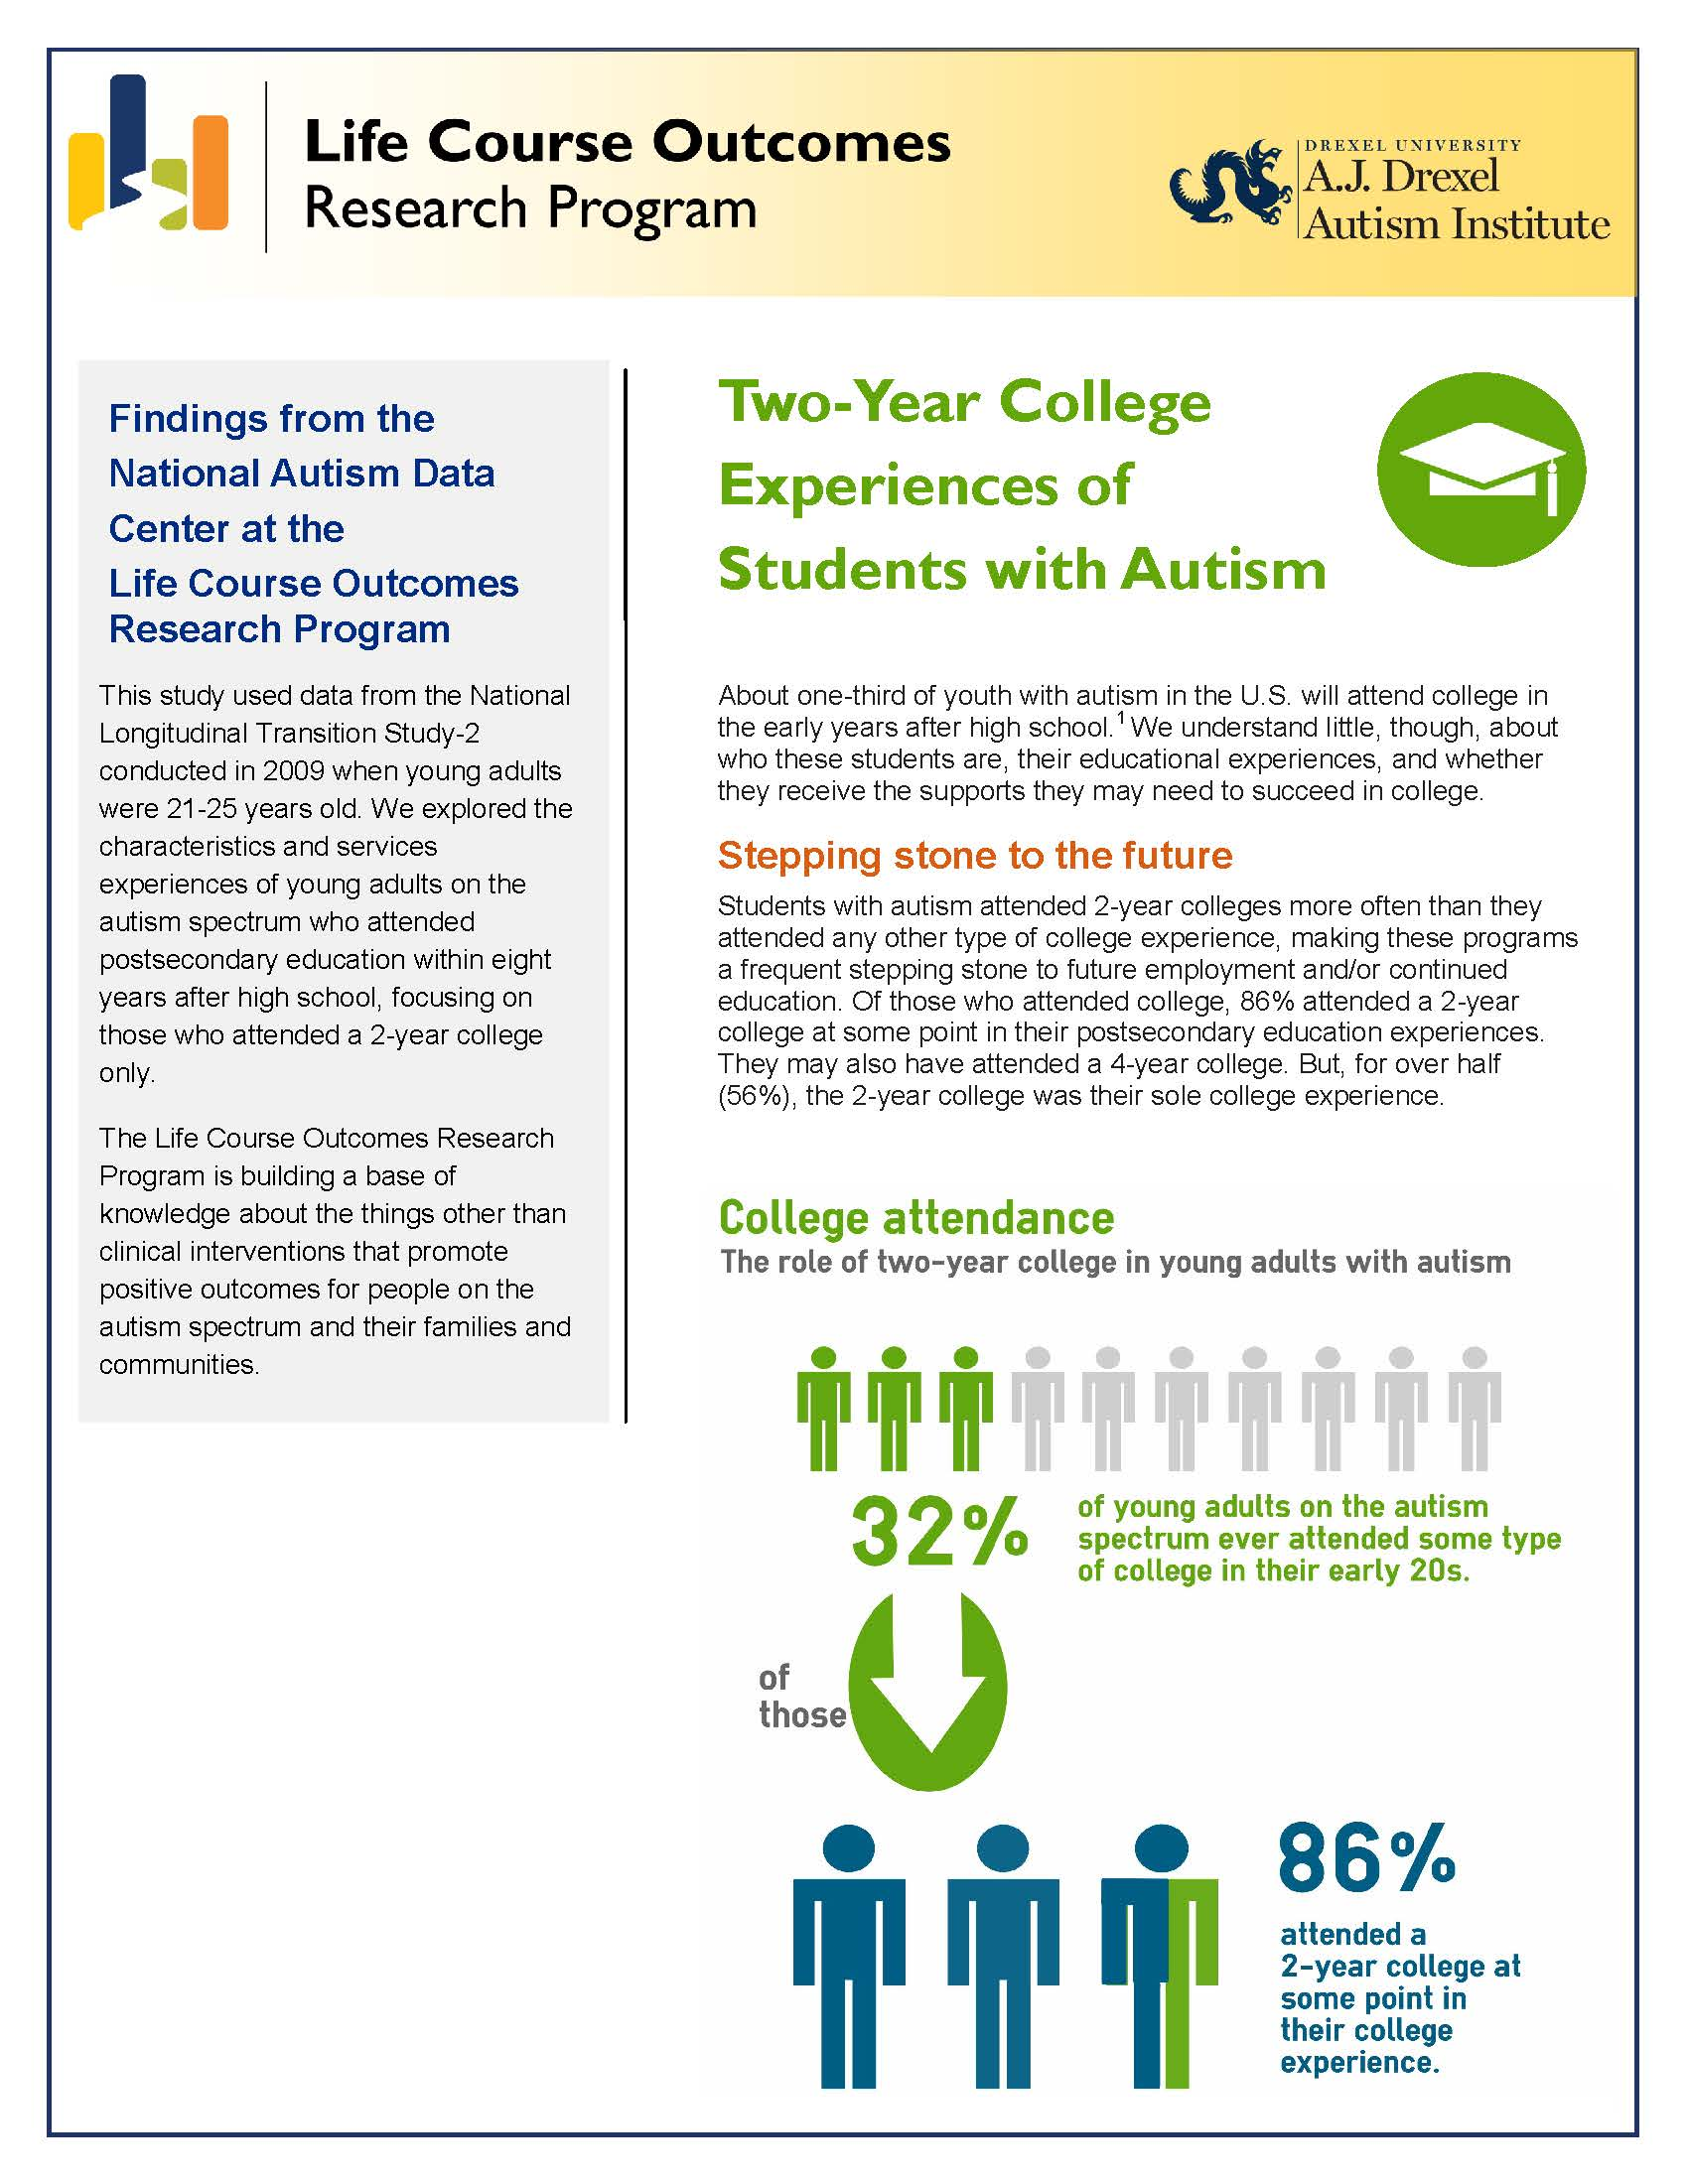 Two year college experiences of students with autism